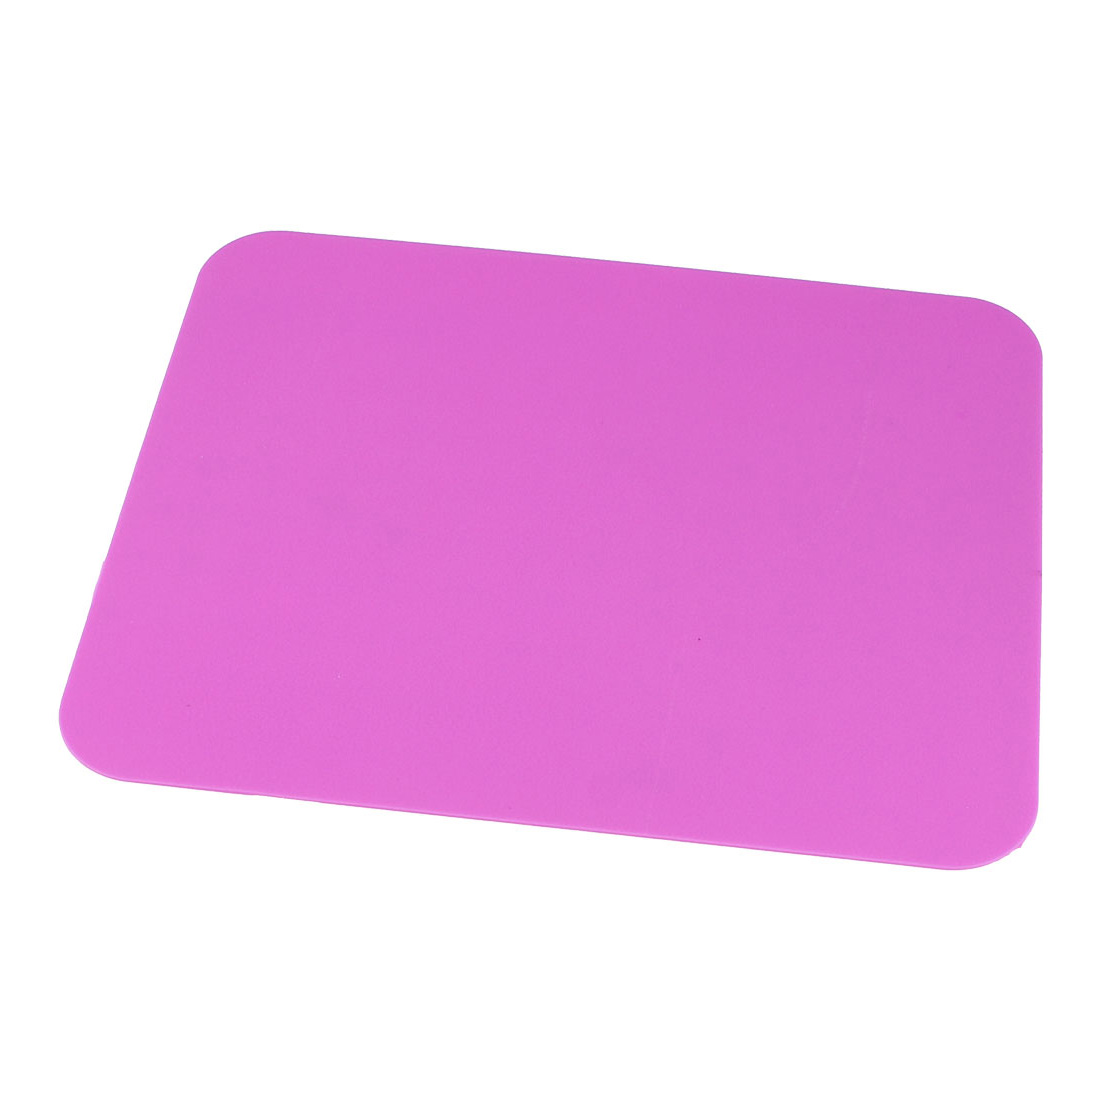 Notebook Desktop Computer 1mm Thickness Optical Mouse Pad Fuchsia for Gaming